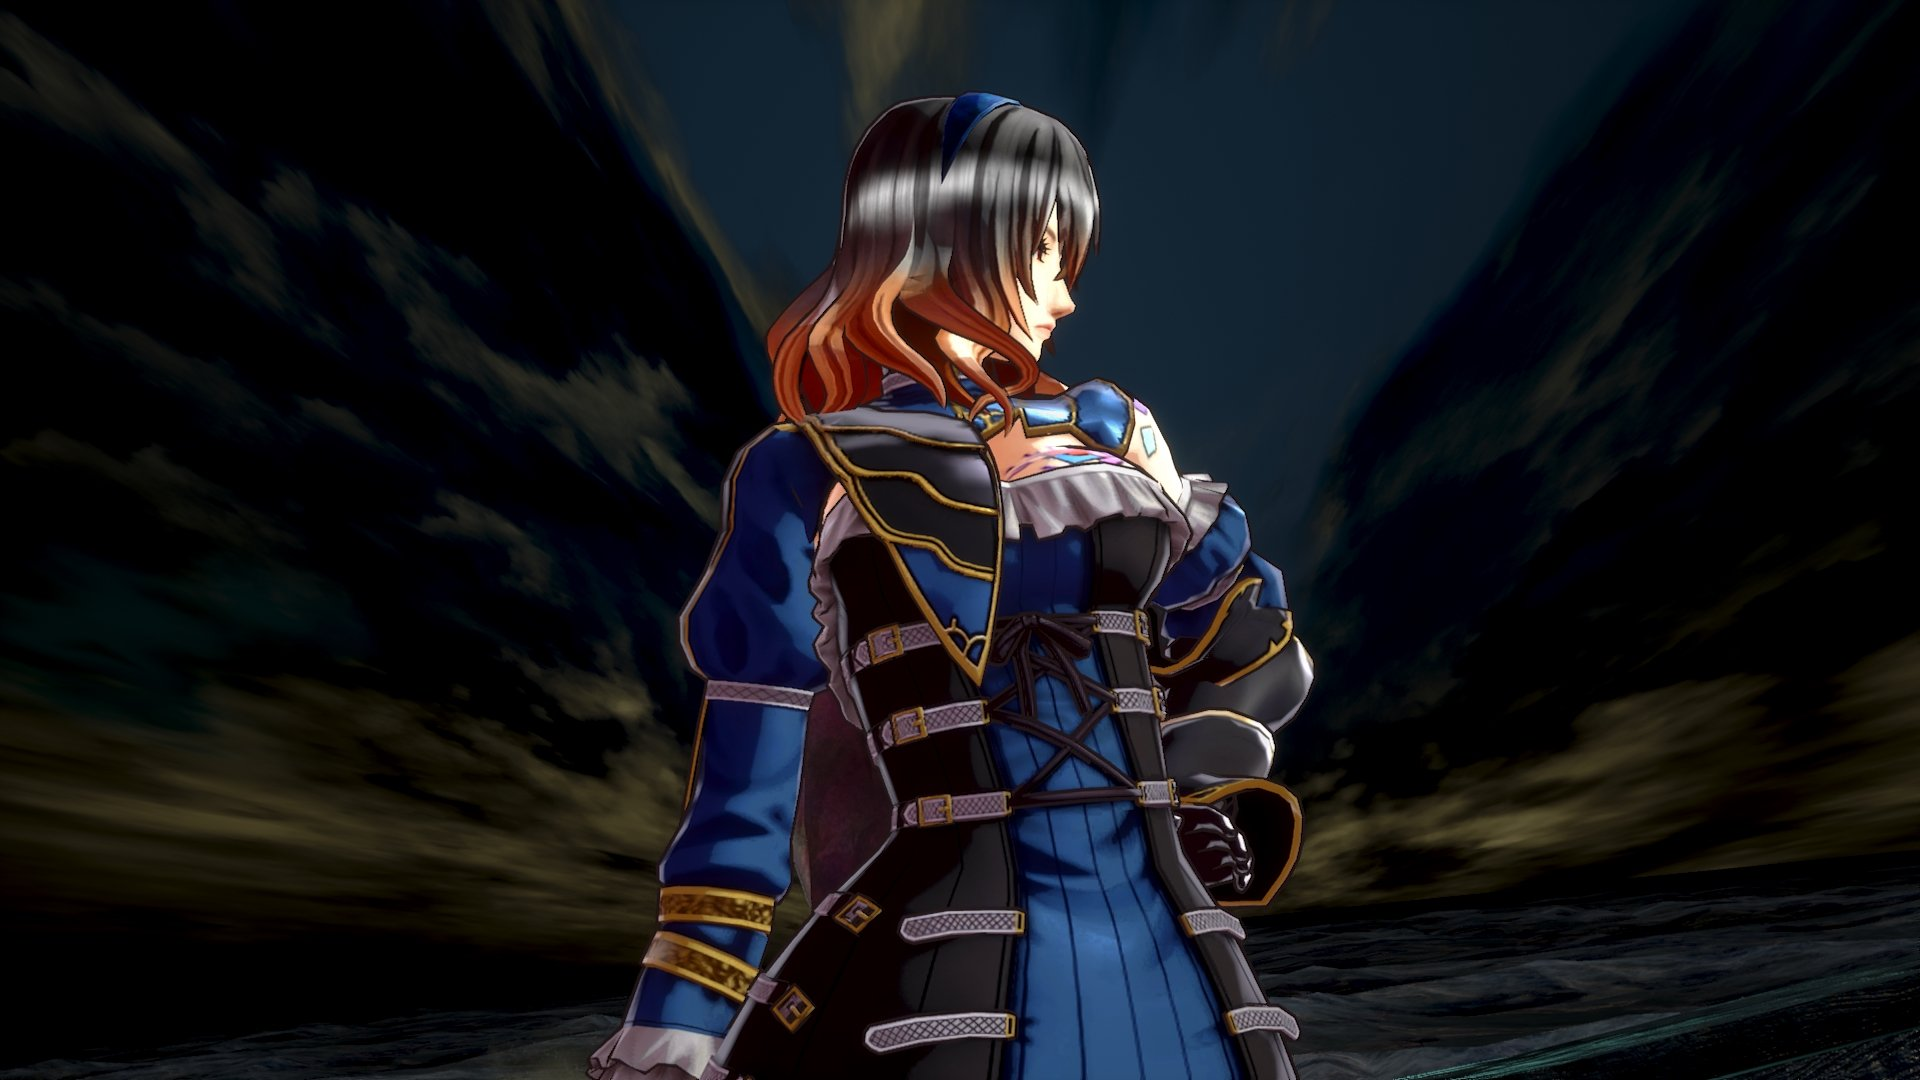 Bloodstained: Ritual of the Night sequel and series